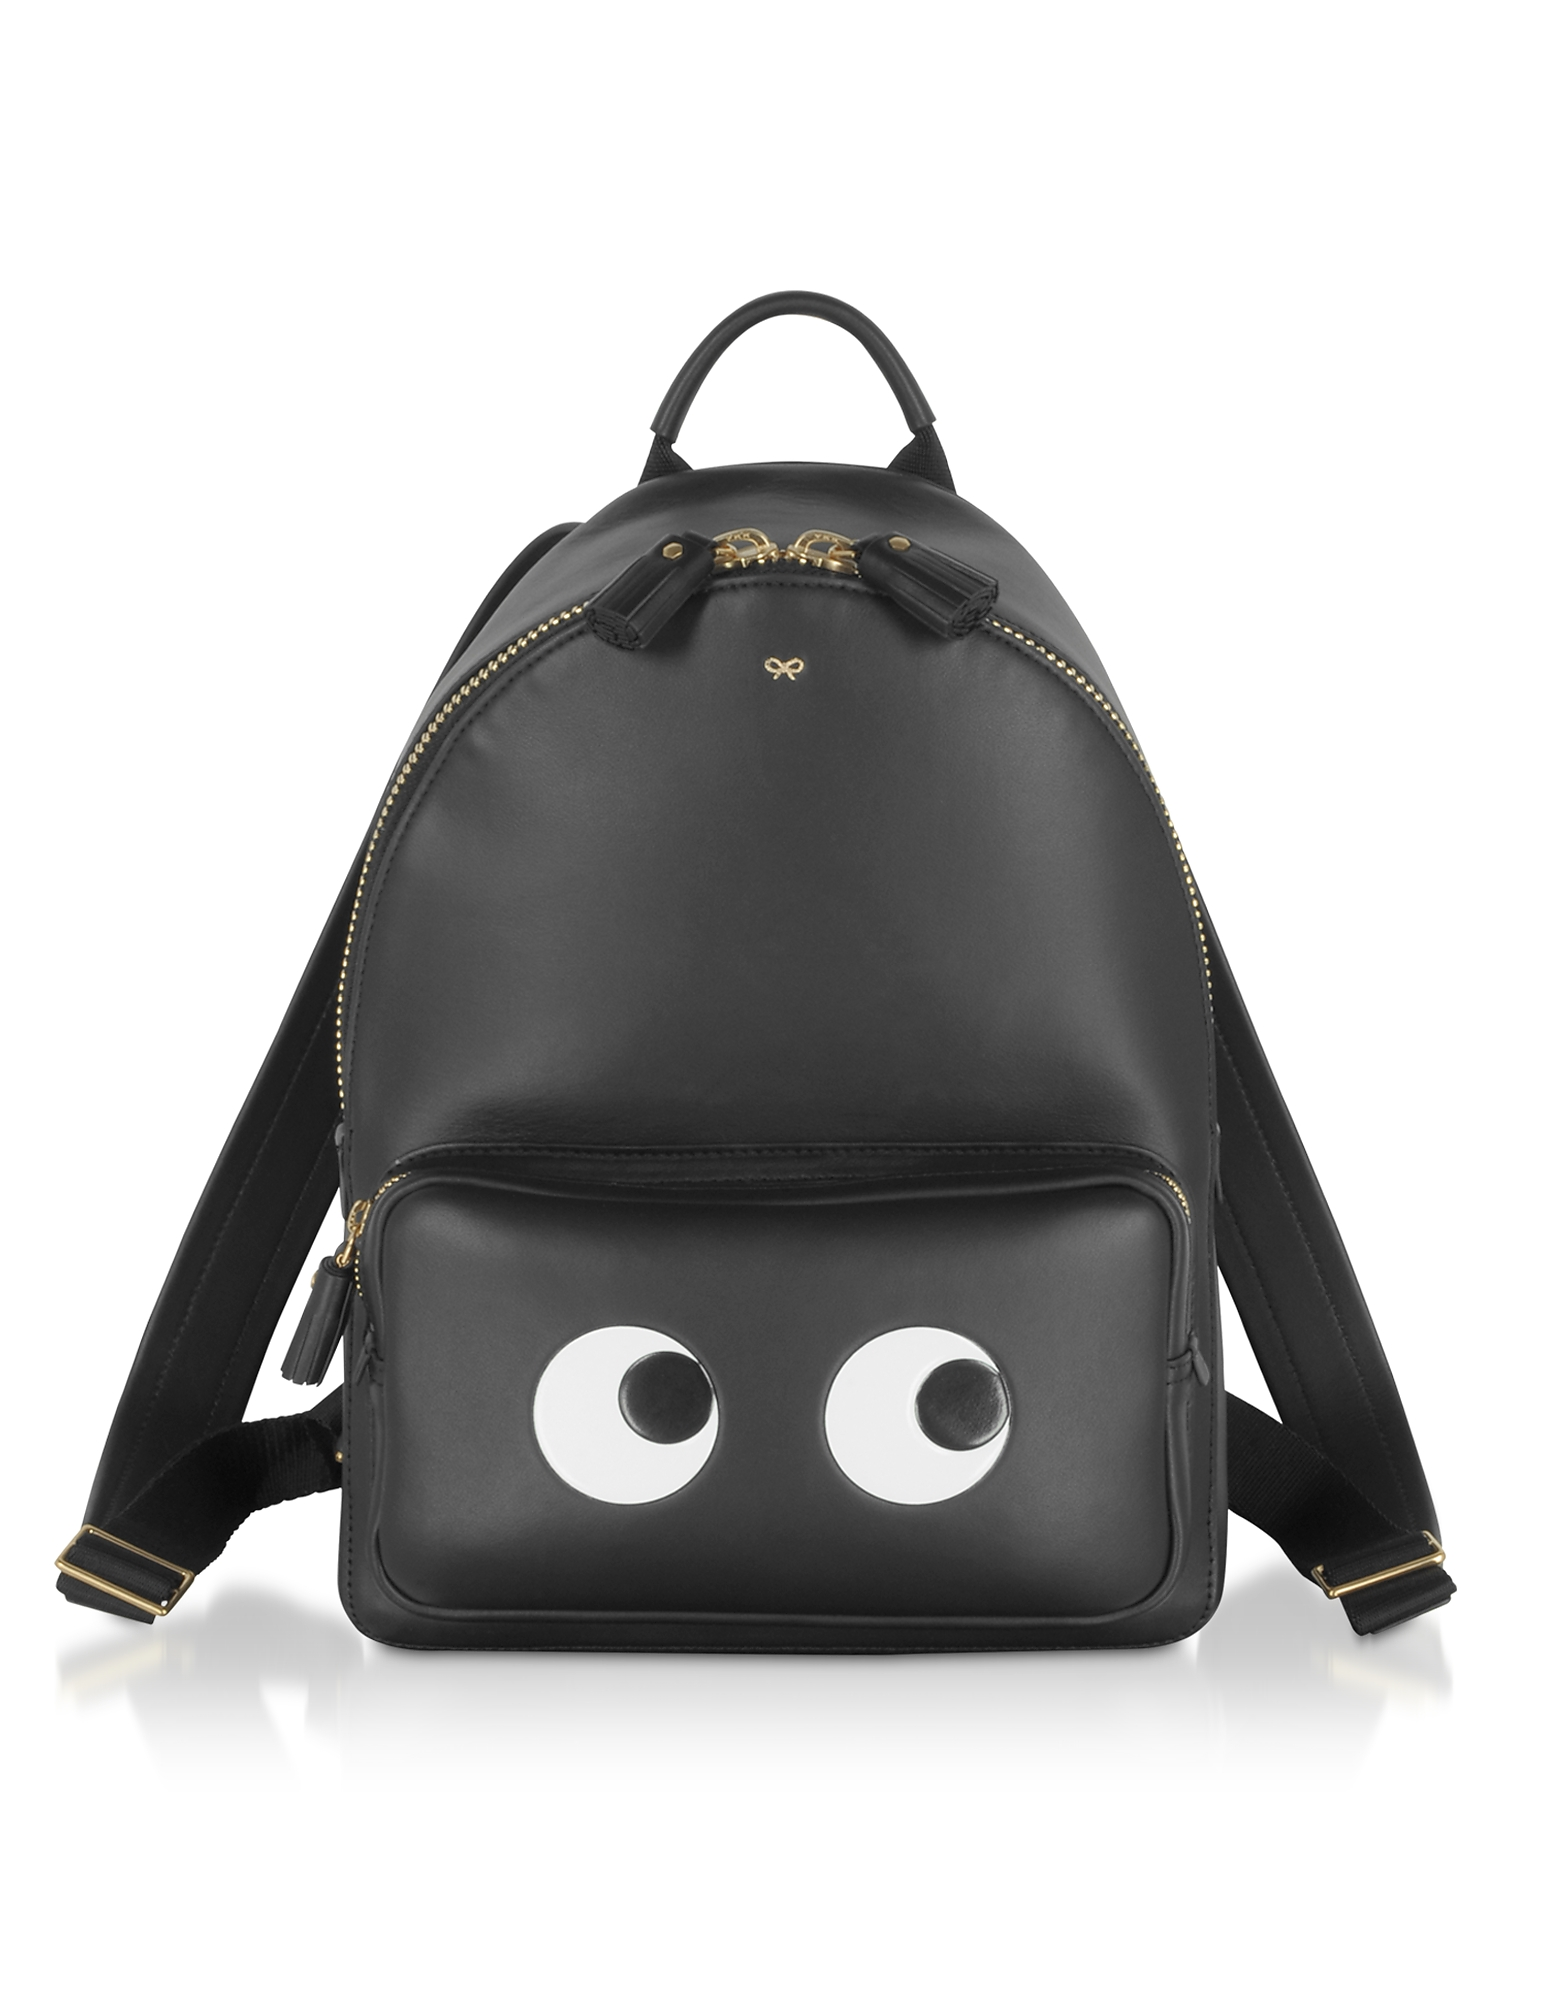 Anya Hindmarch Designer Handbags, Black Circus Mini Eyes Backpack